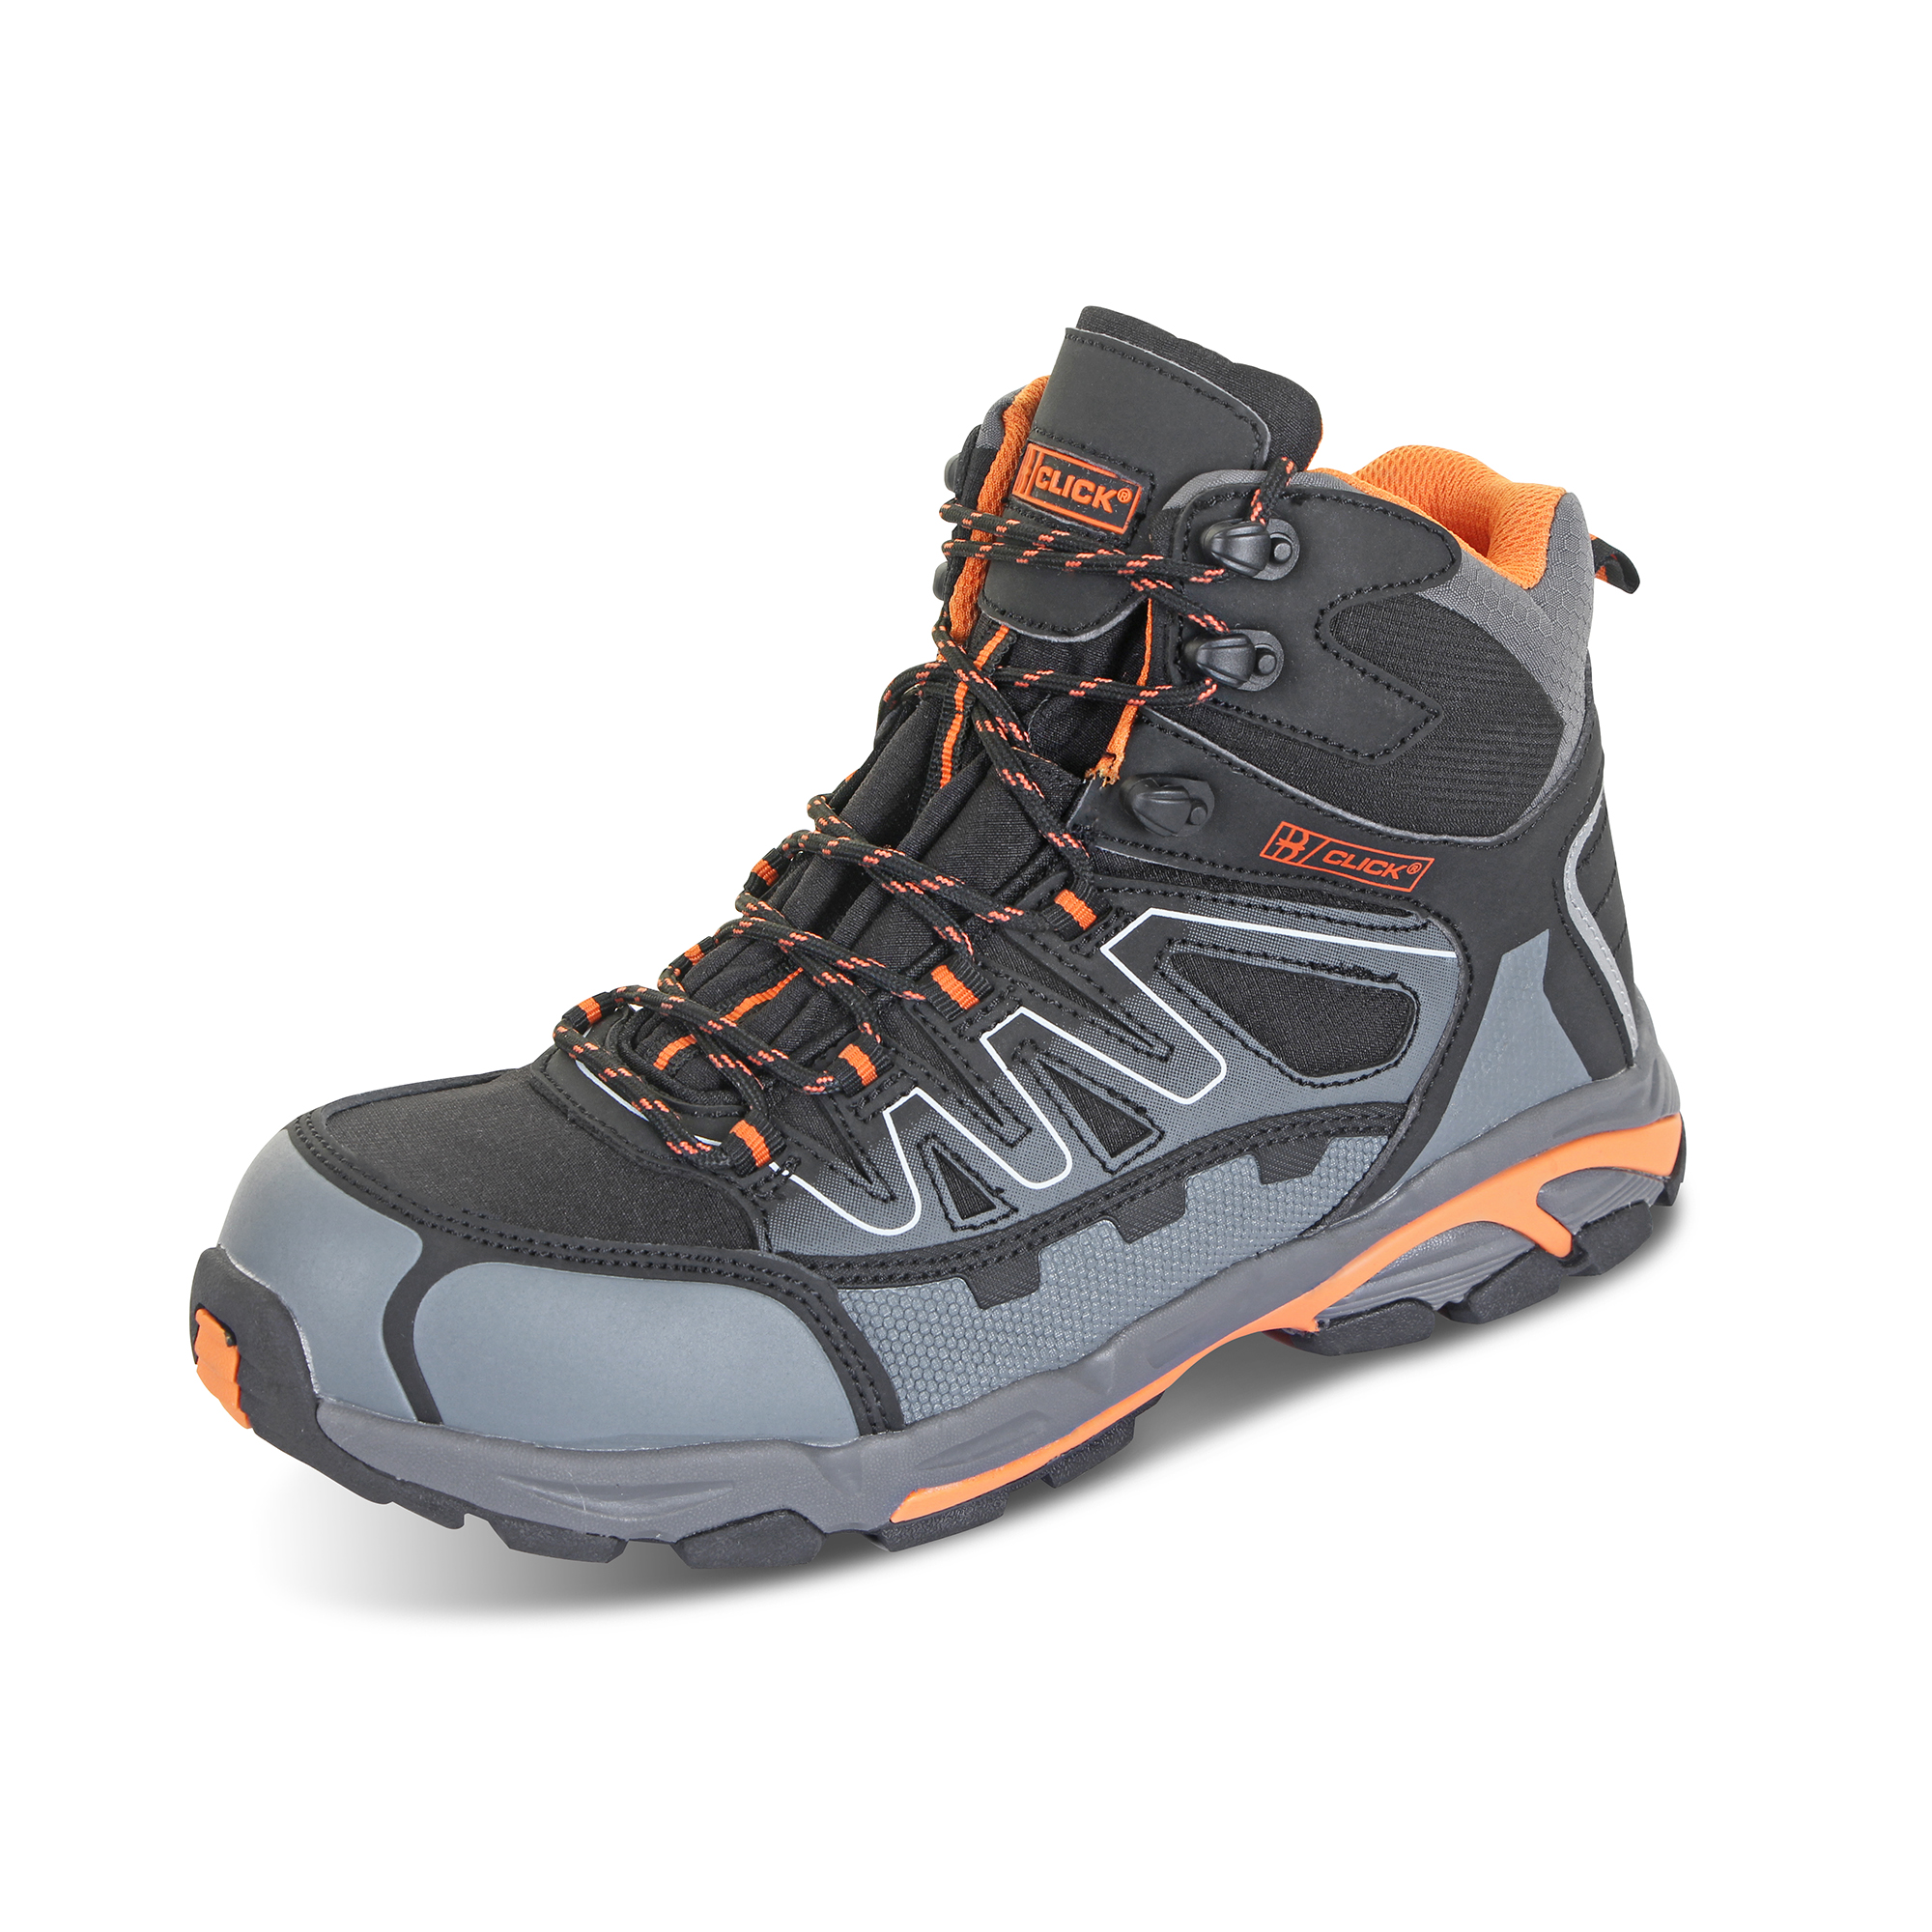 Limitless Click Footwear Leather S3 Hiker Boot Composite Toe Size 6 Black/Grey Ref CF3506 *Up to 3 Day Leadtime*